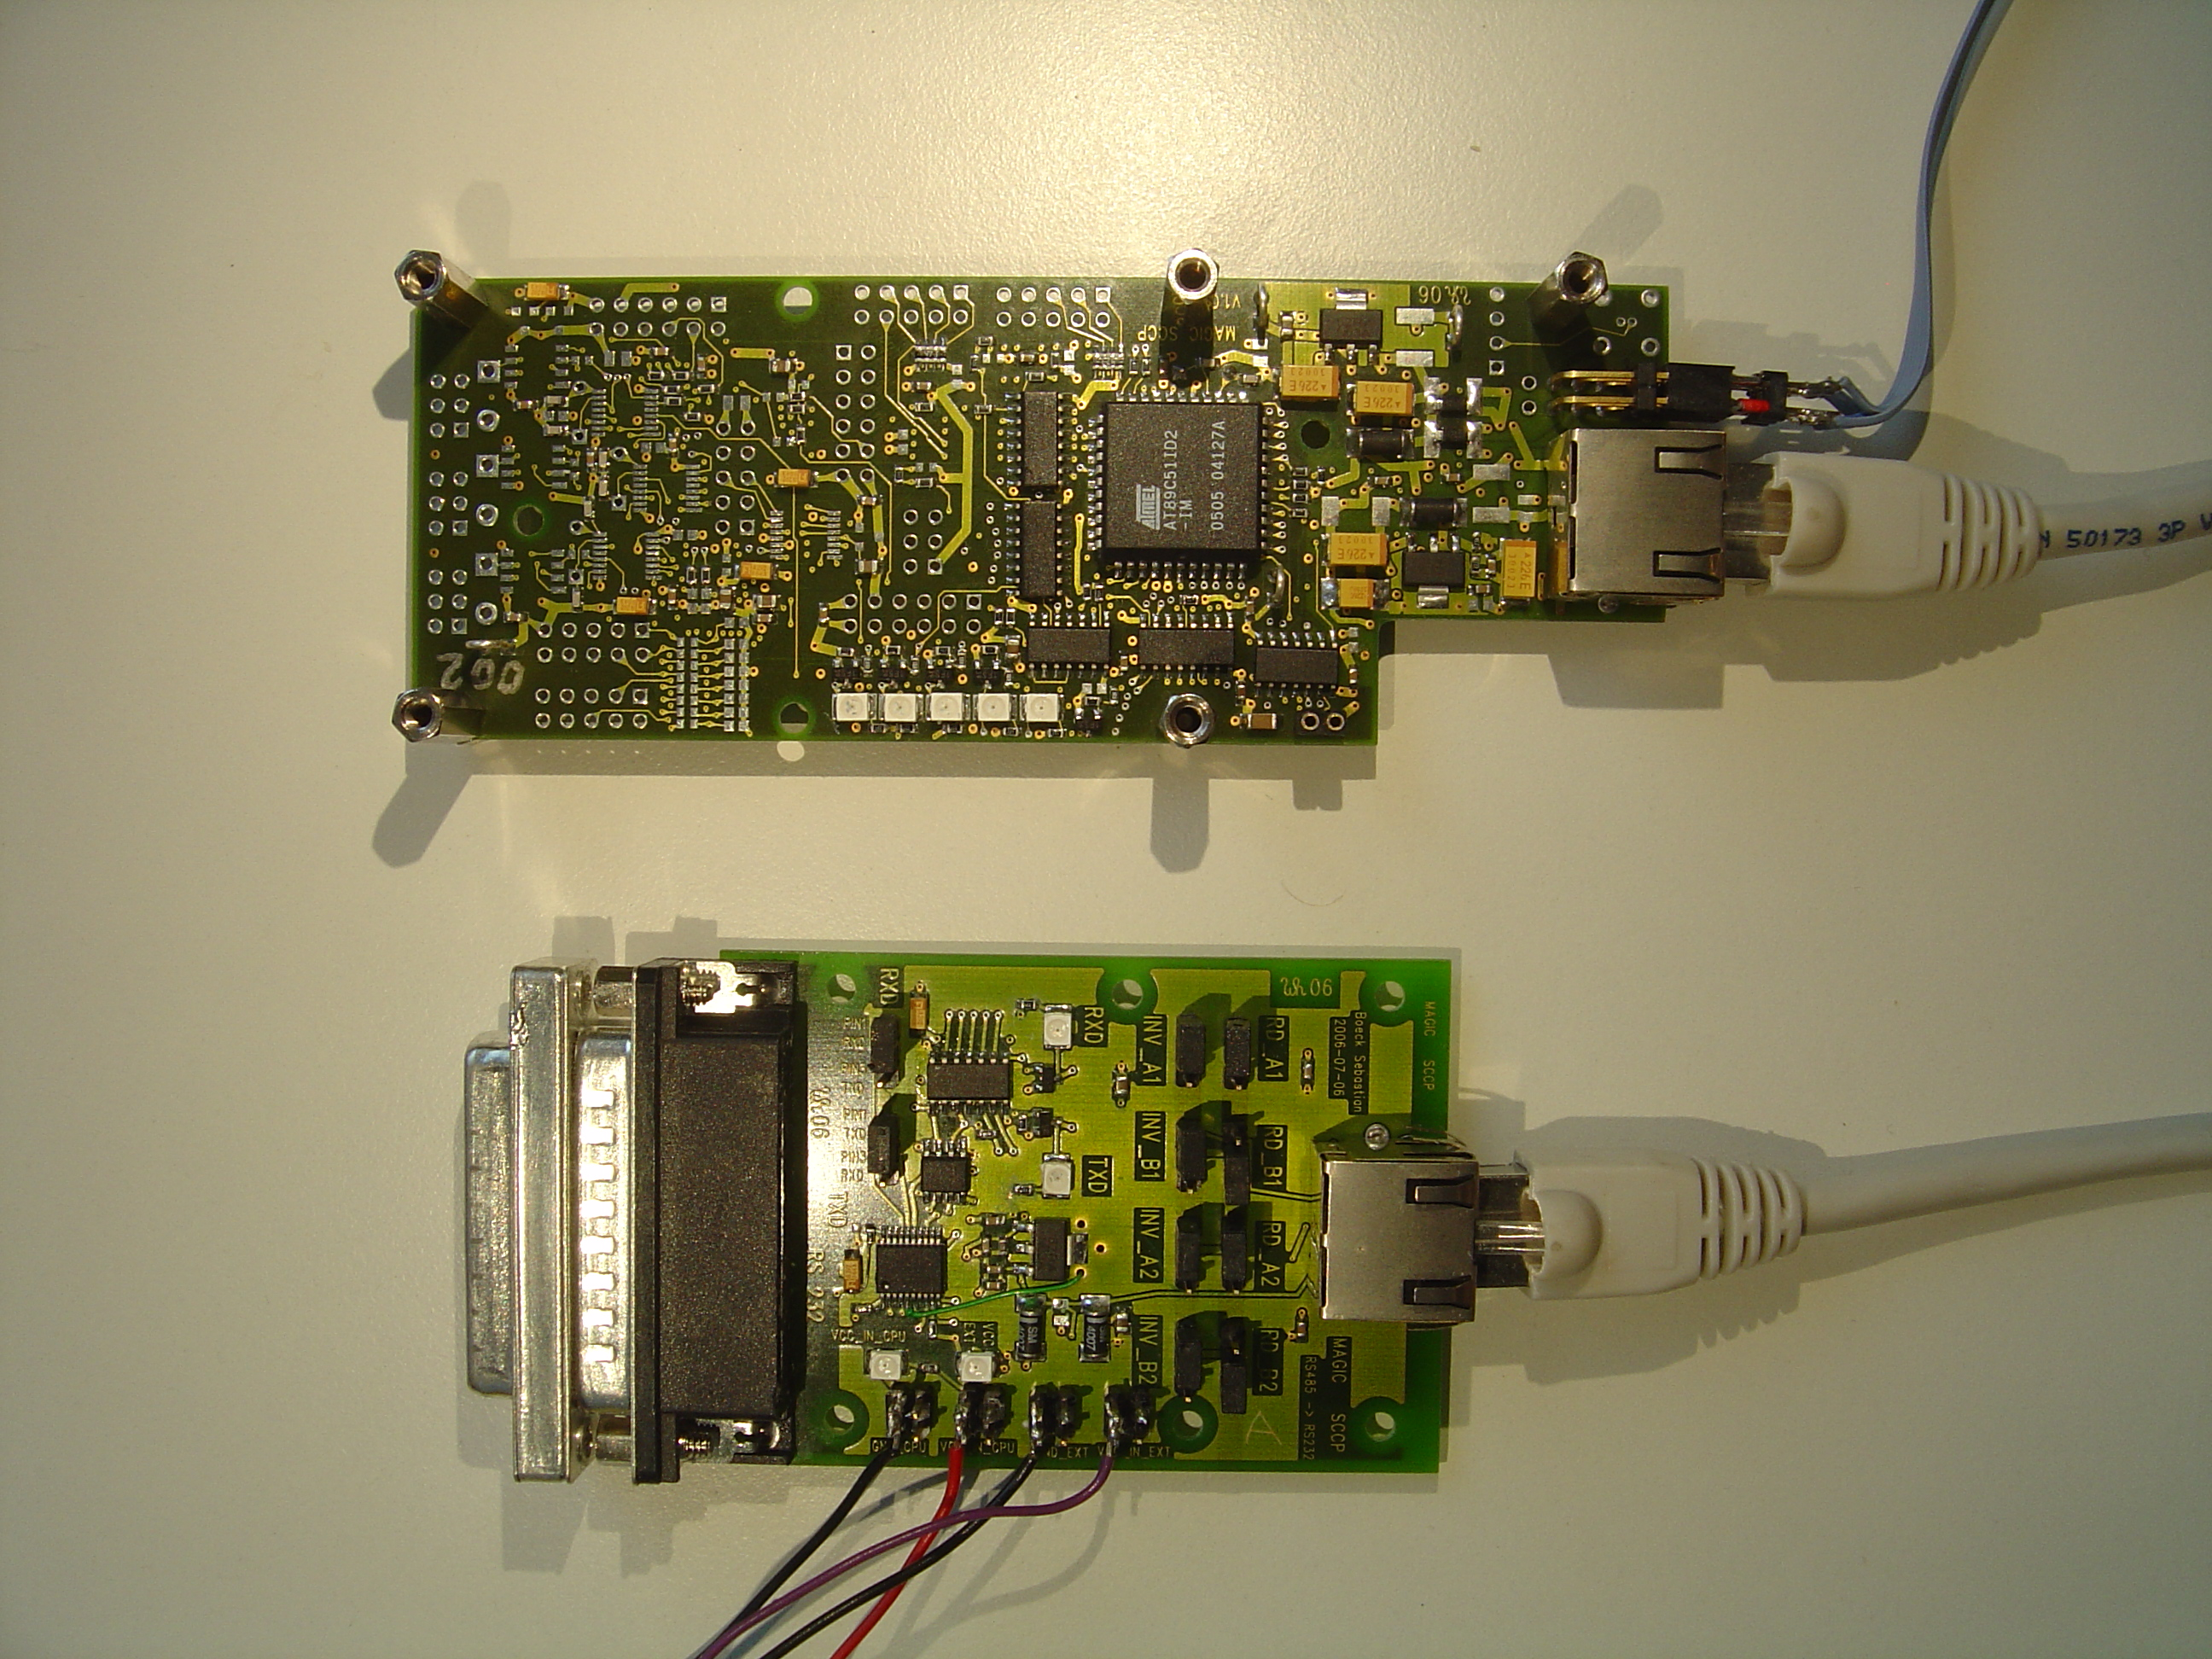 The Slow Control For Magic Ii Whaberer Circuit Boards Like Appears Rs232 To Rs485 Board And Sccp Top